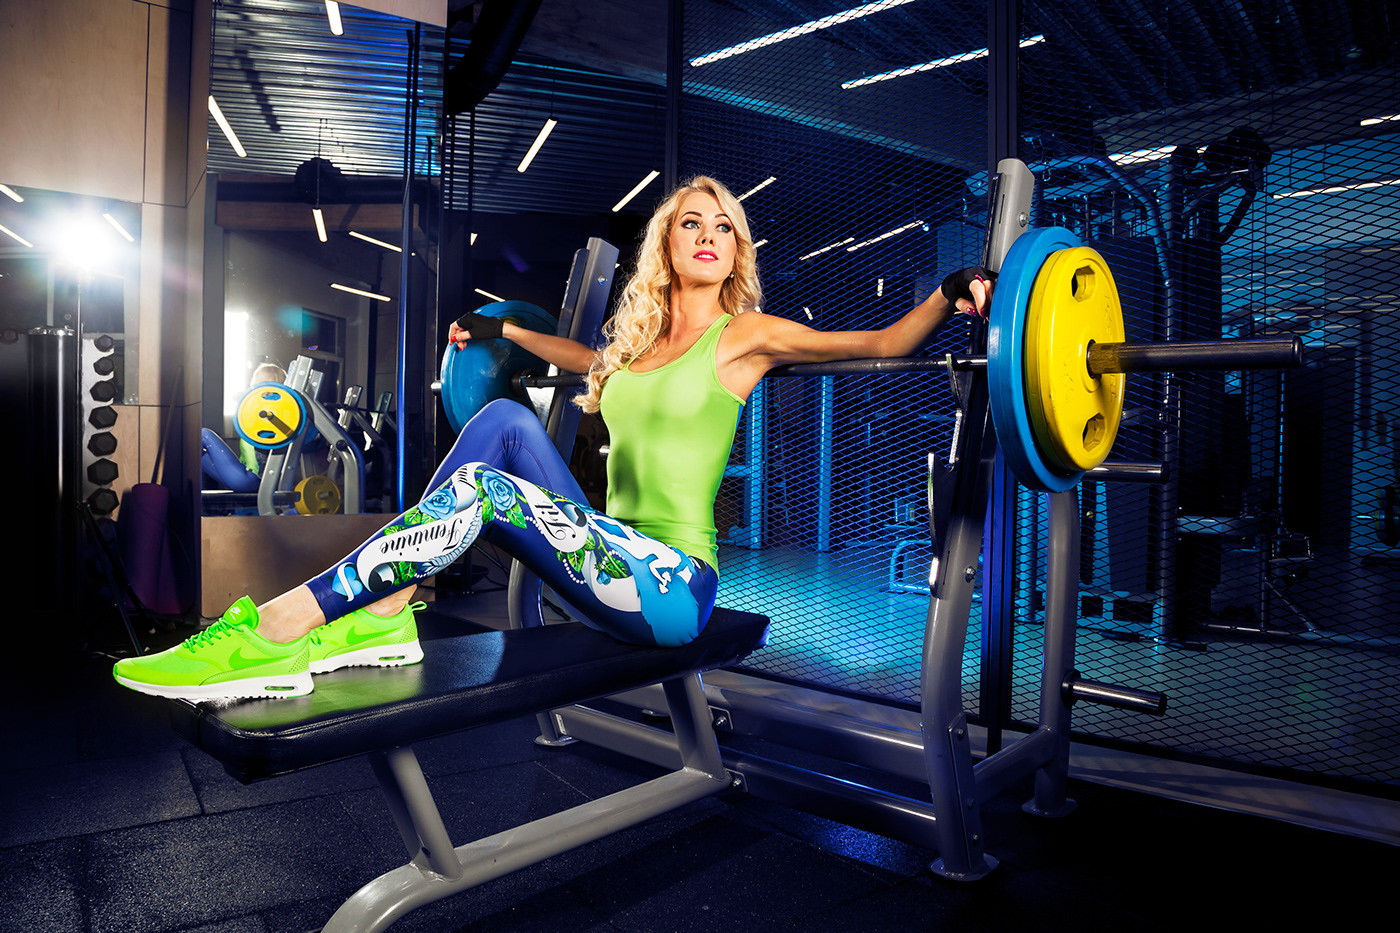 BodyBuilding clothes fitness gym leggings model photo session photoshoot product sportwear